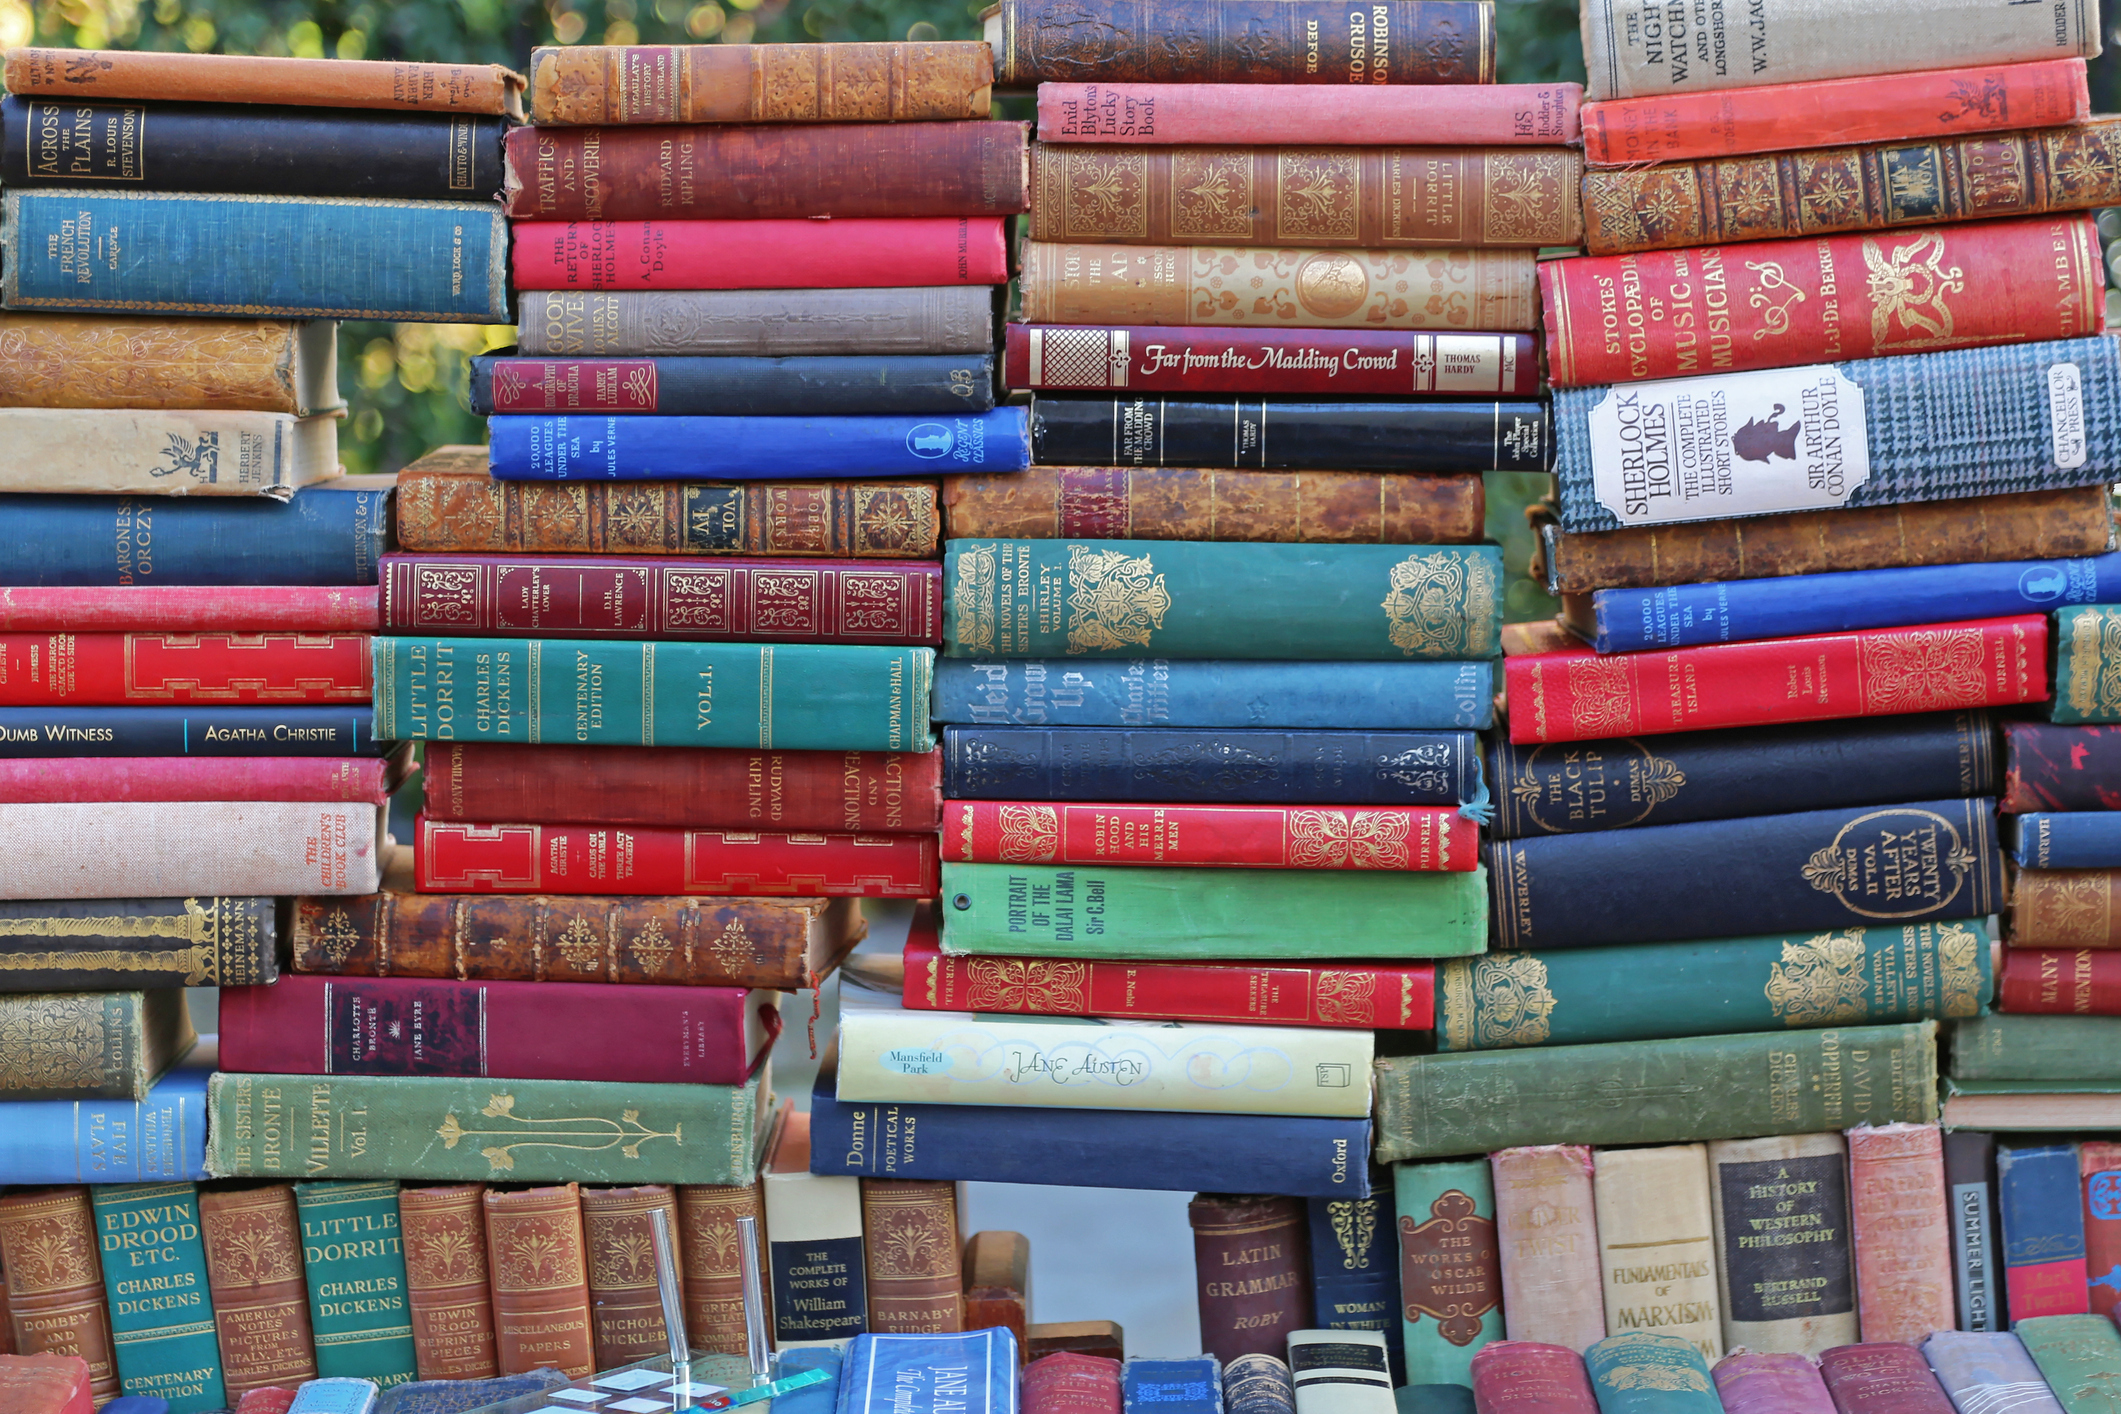 London, United Kingdom - November 22, 2013: Old Classic Books For Sale at Portobello Market in London, UK.